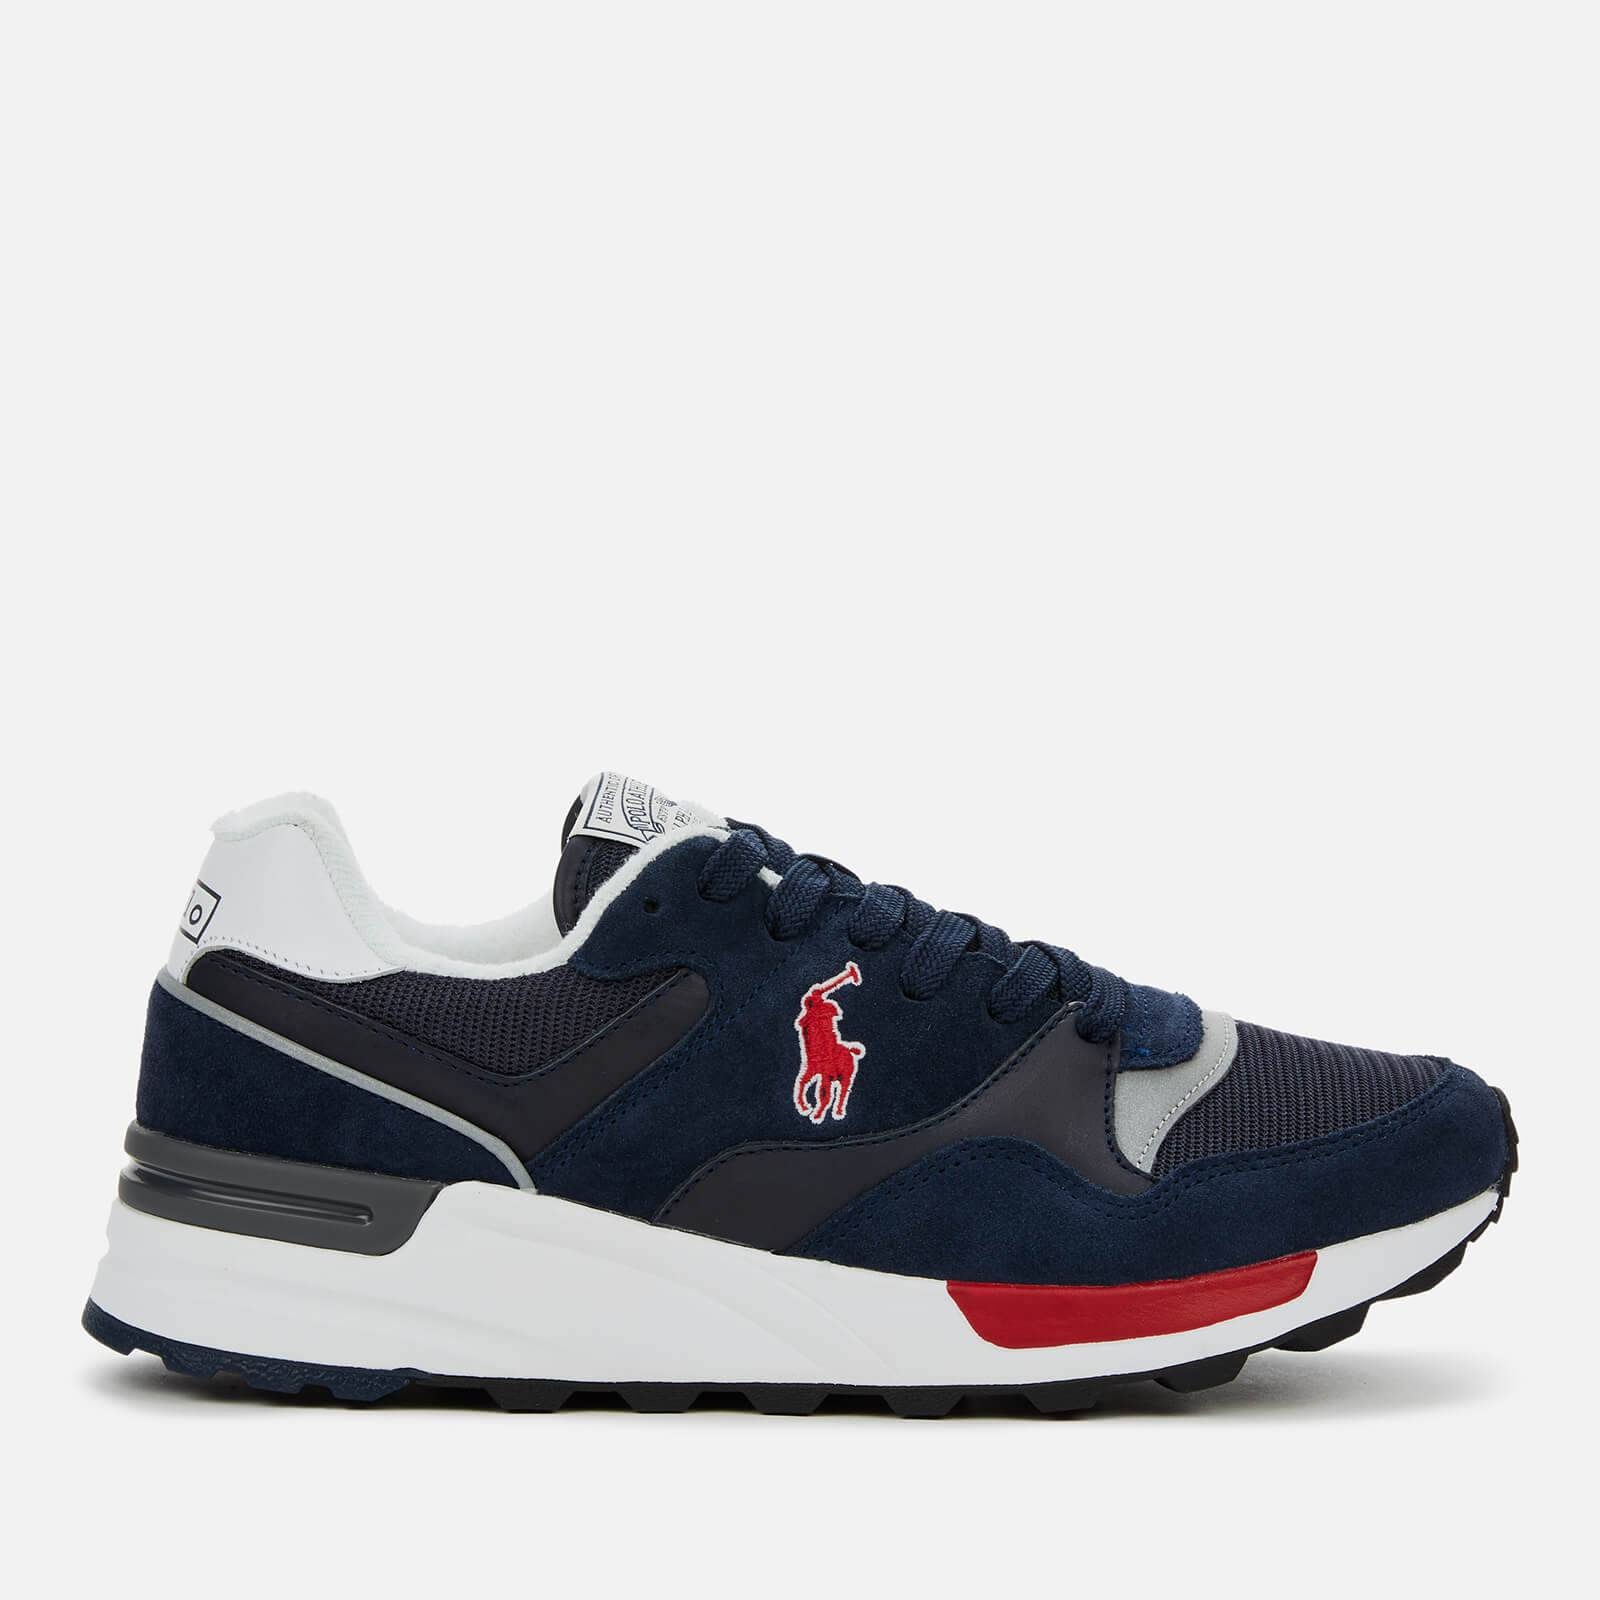 Ralph Lauren Polo Ralph Lauren Men's Trackstar Pony Suede/Mesh Running Style Trainers - Newport Navy - UK 11